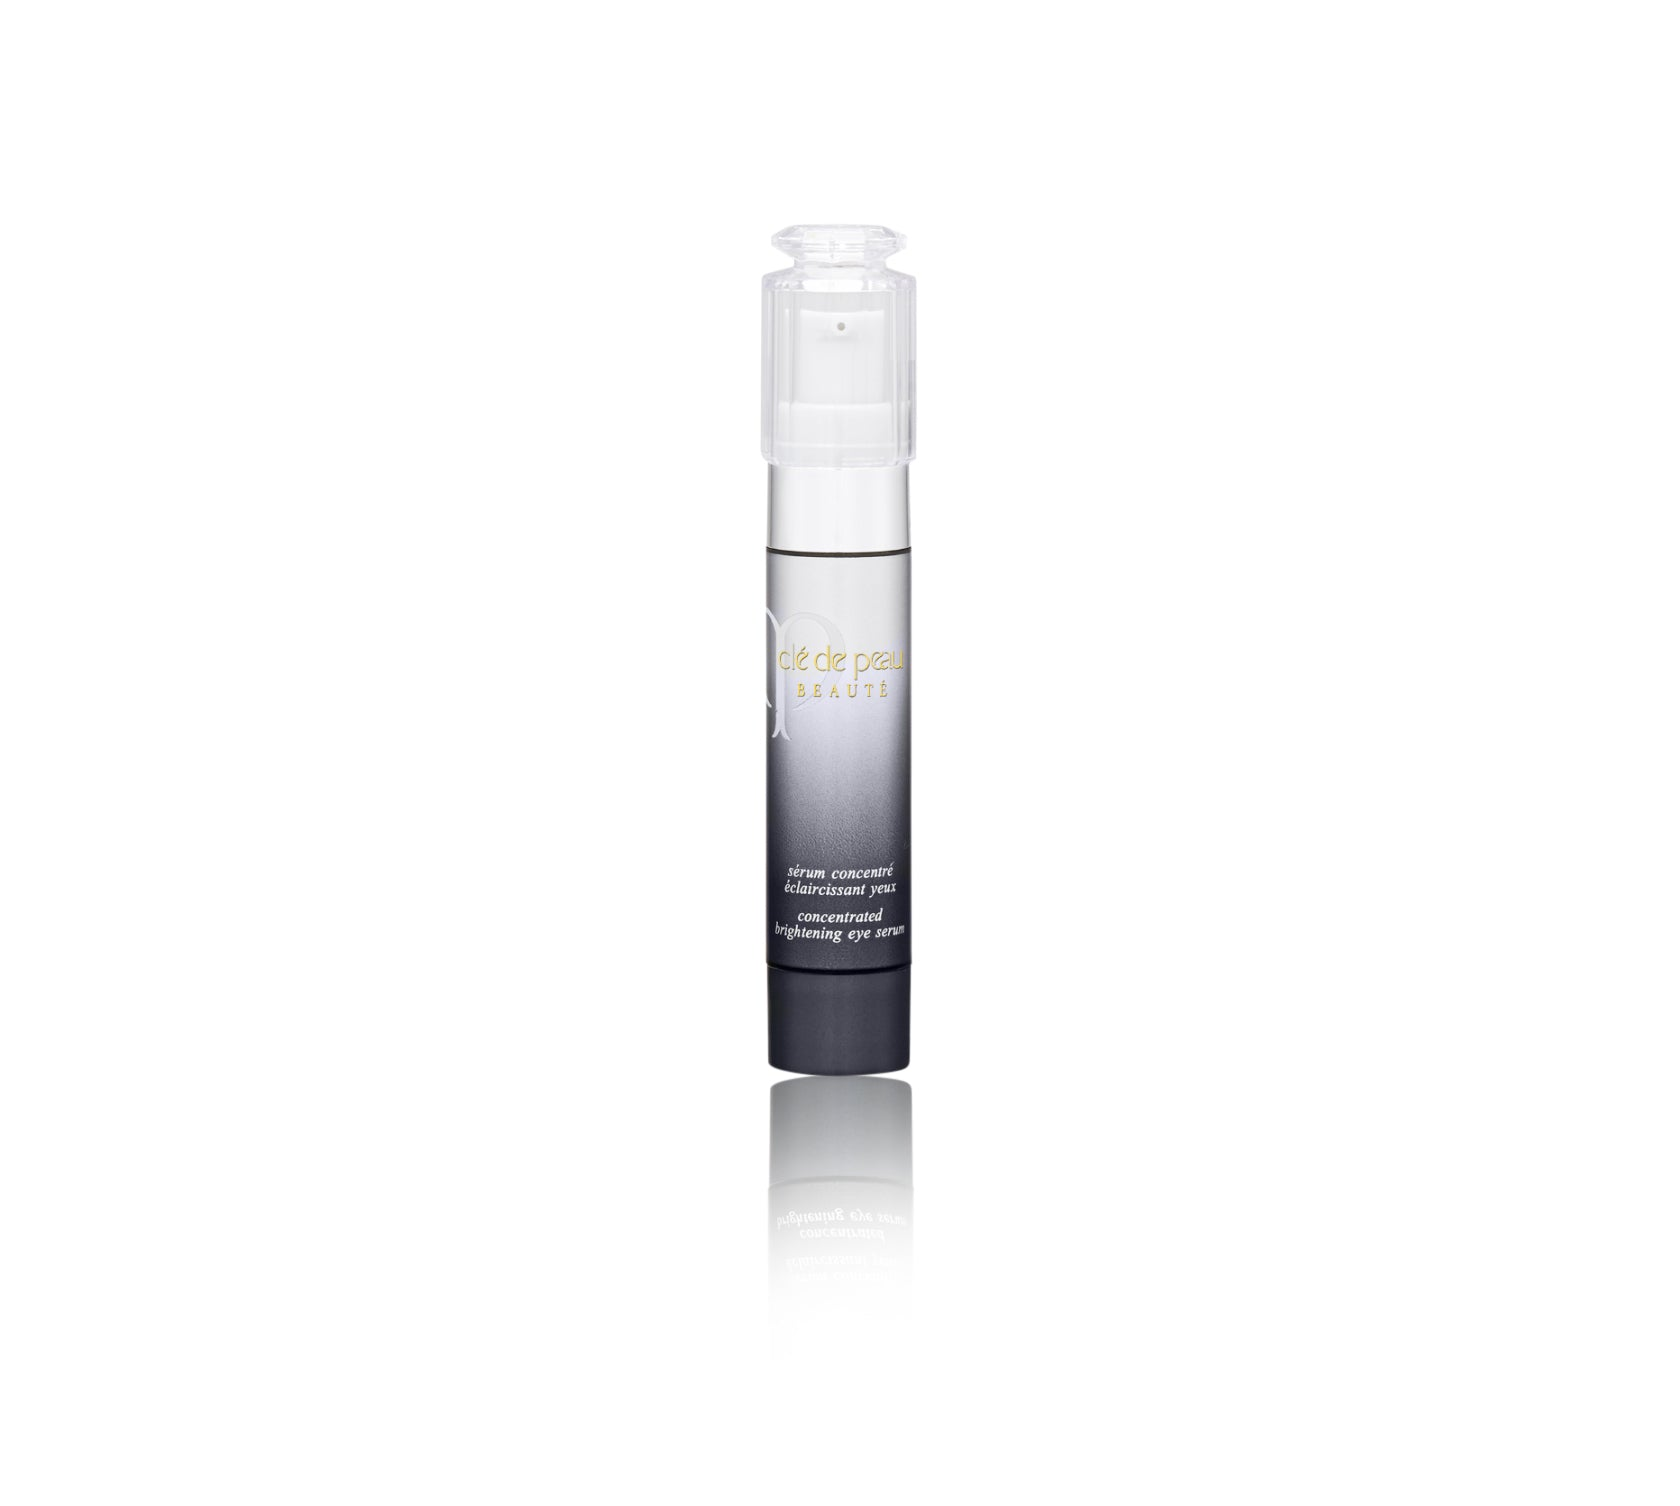 concentrated-brightening-eye-serum